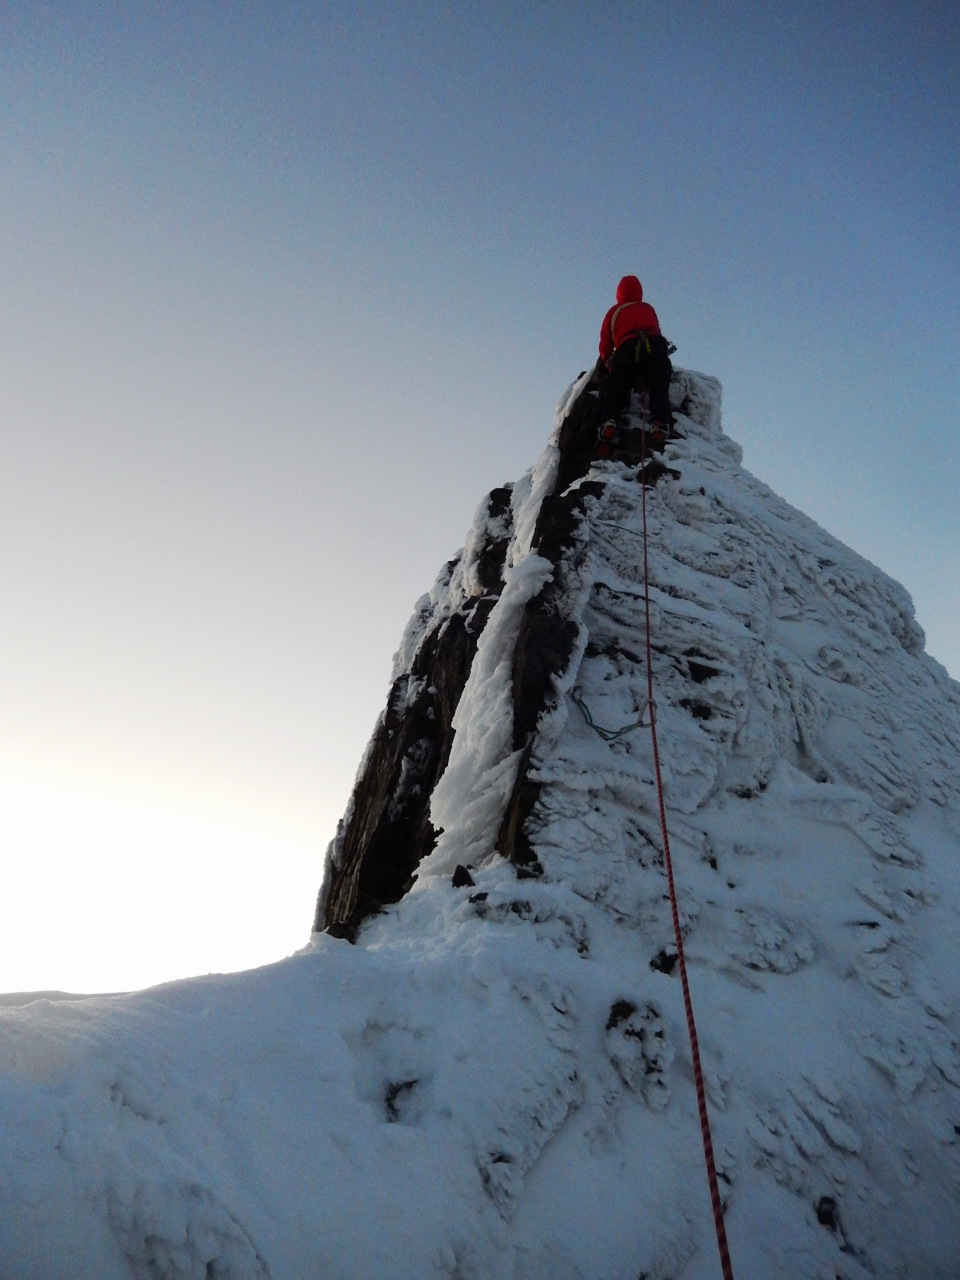 Joris charging up the crux of the Inn Pinn